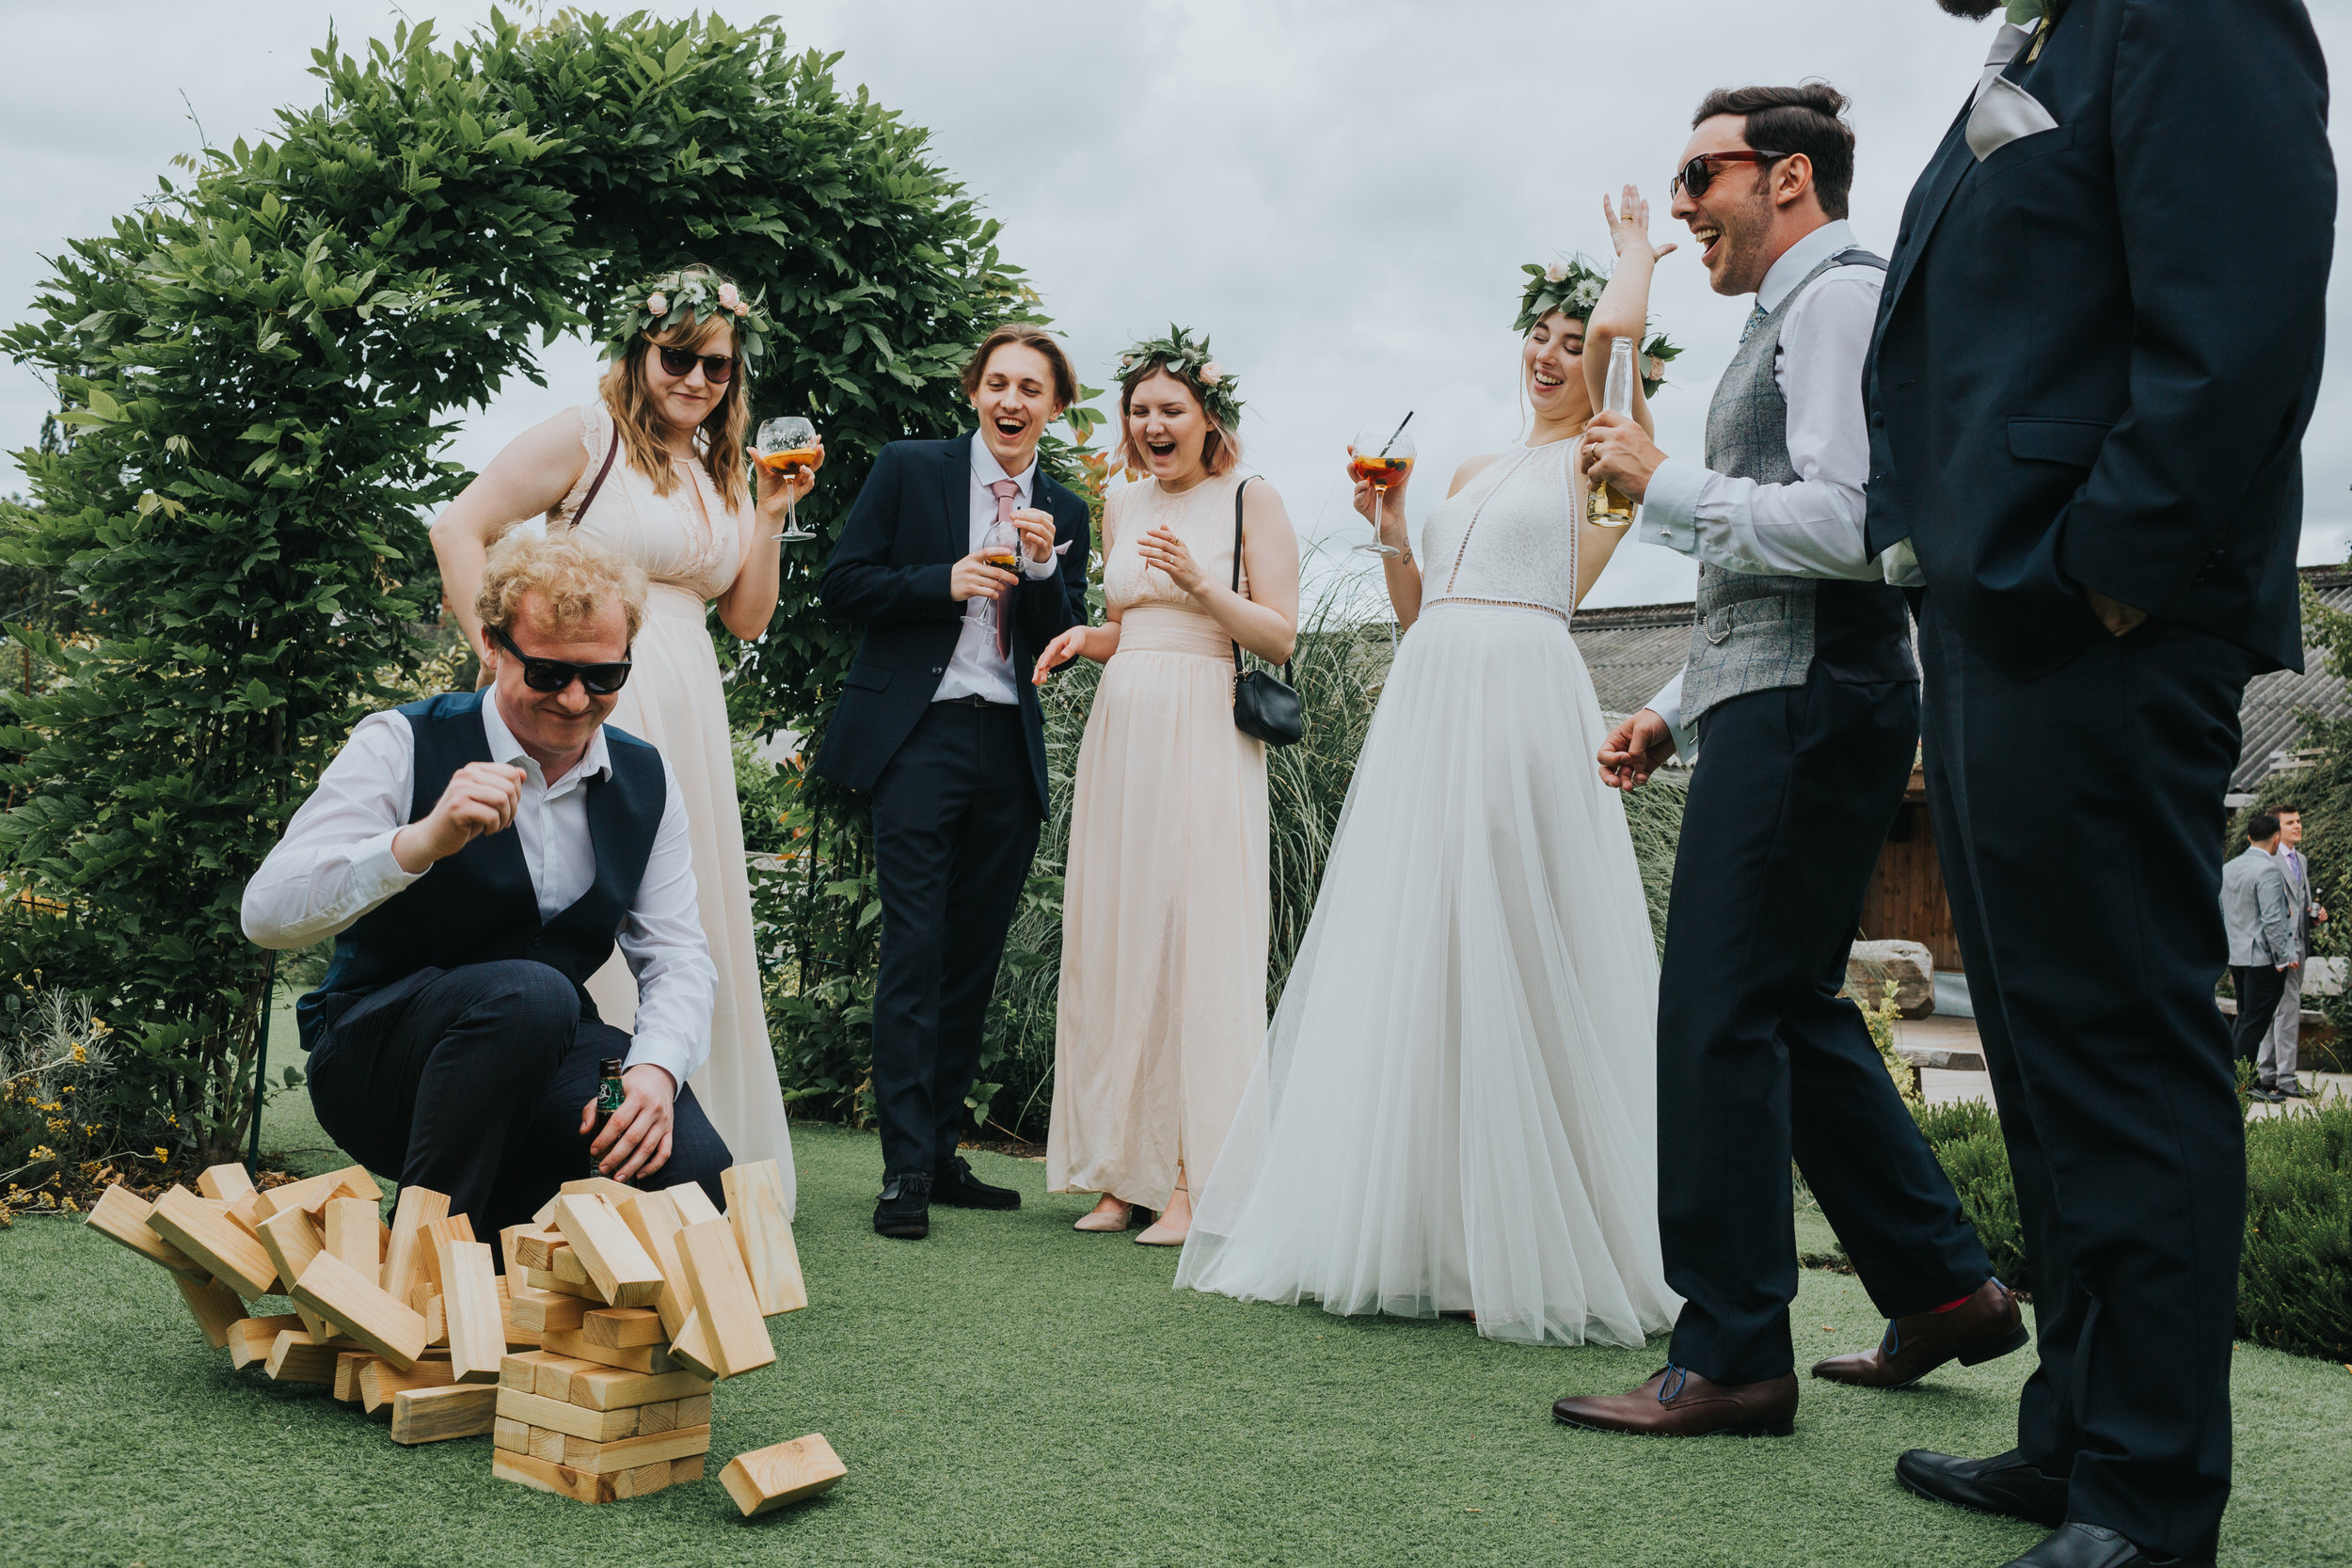 Bridal party roar with laughter as wedding guests topples the Jenga tower.